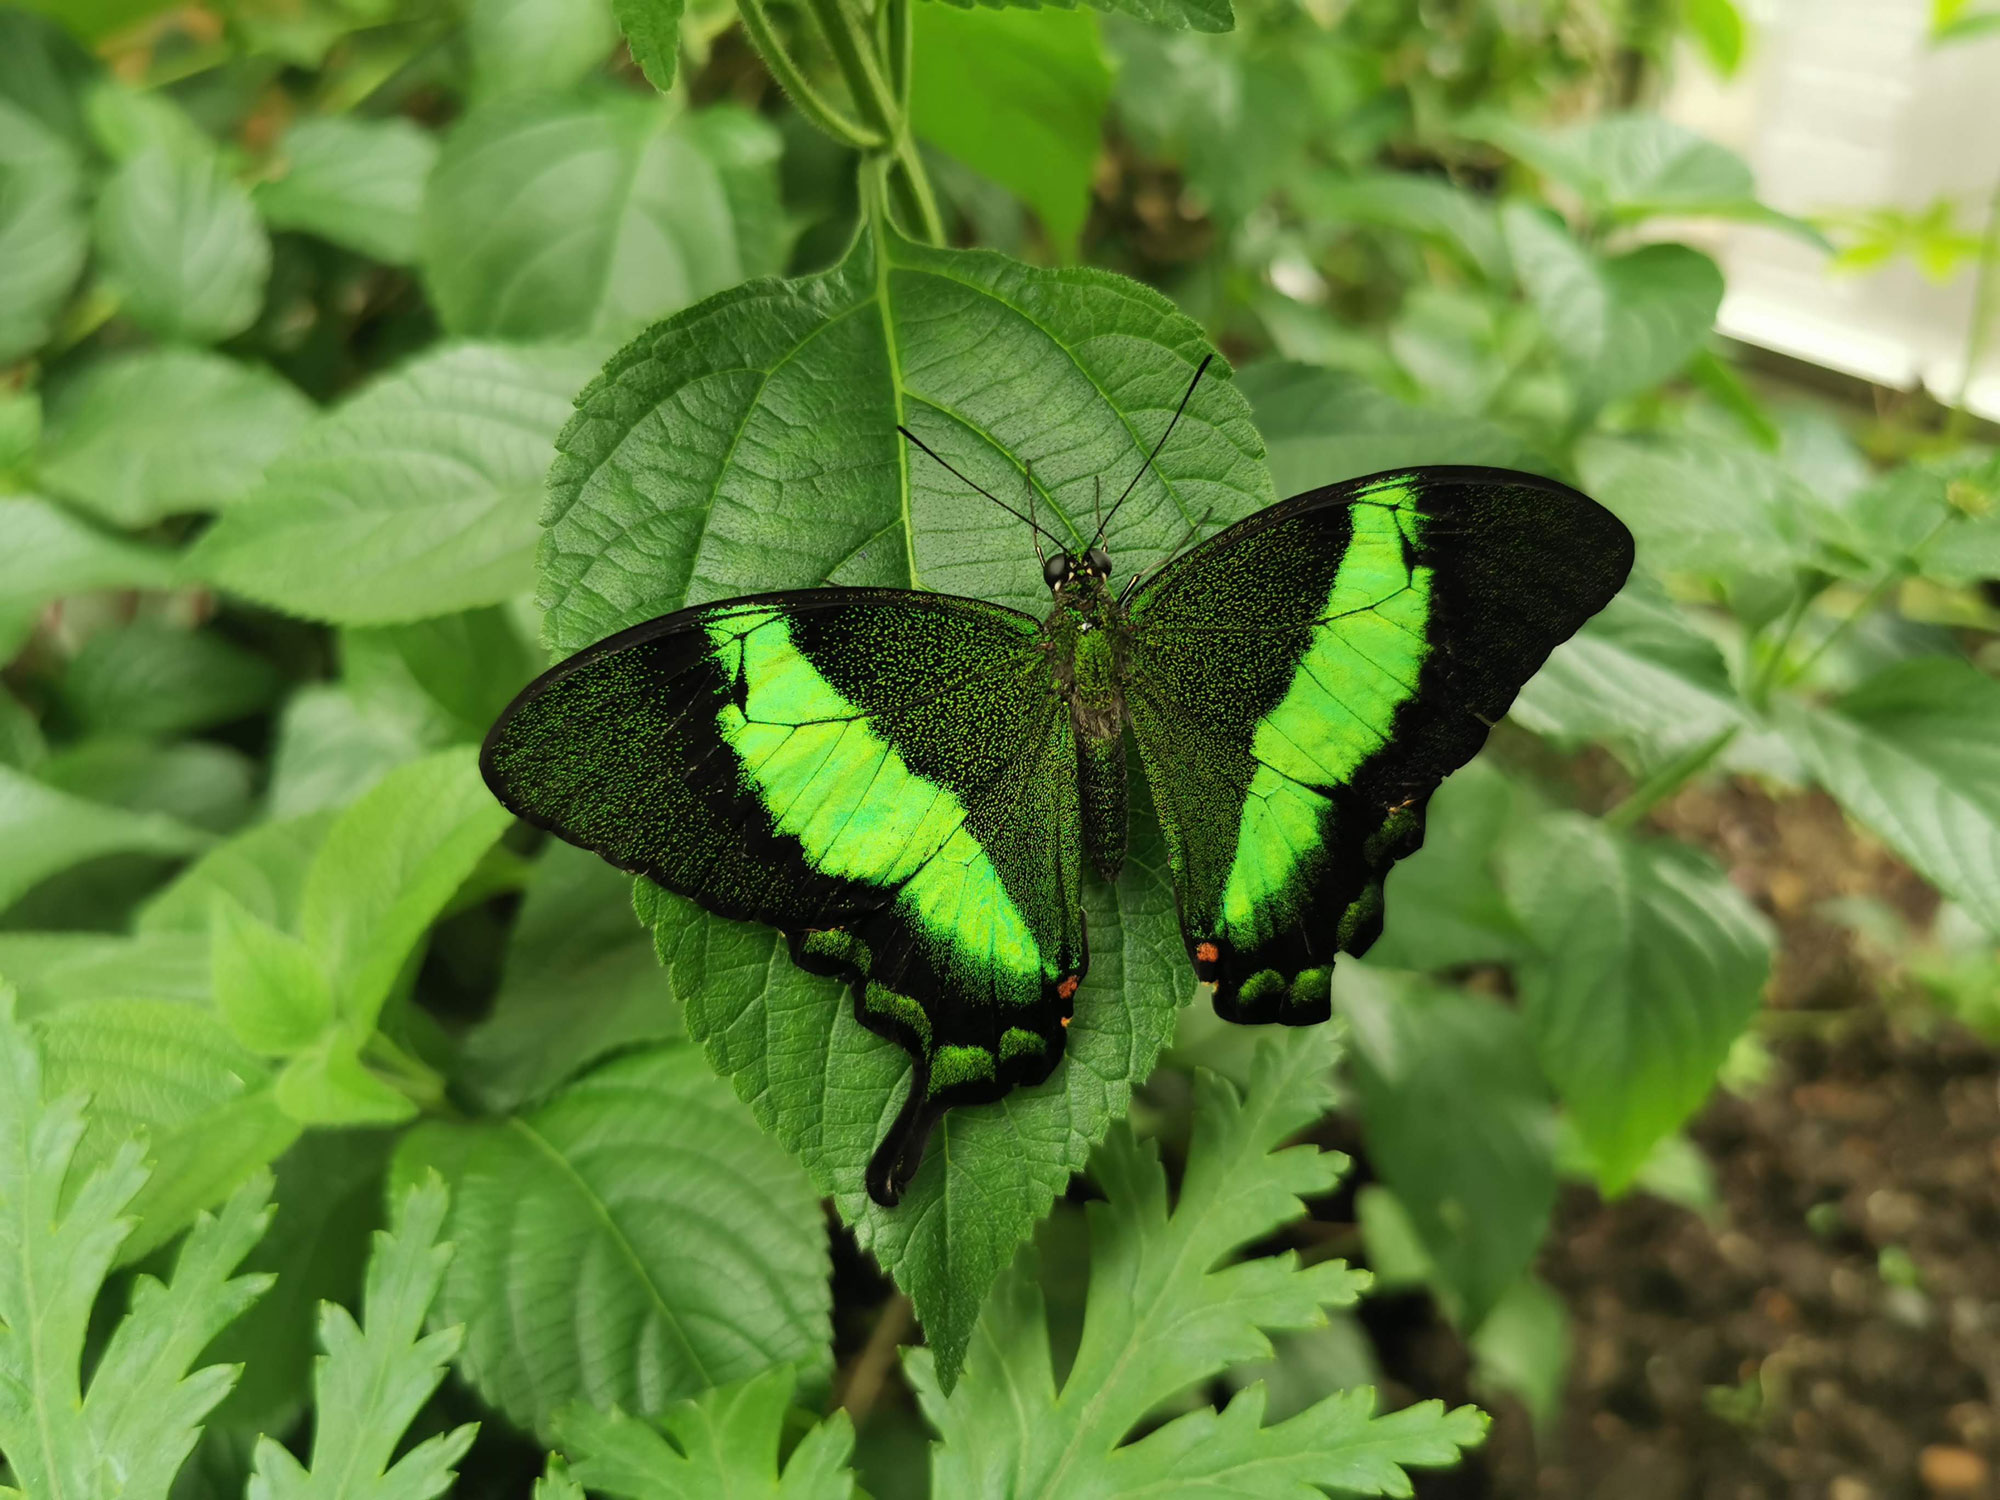 A black and vivid green butterfly is sitting on some green leaves with its wings open